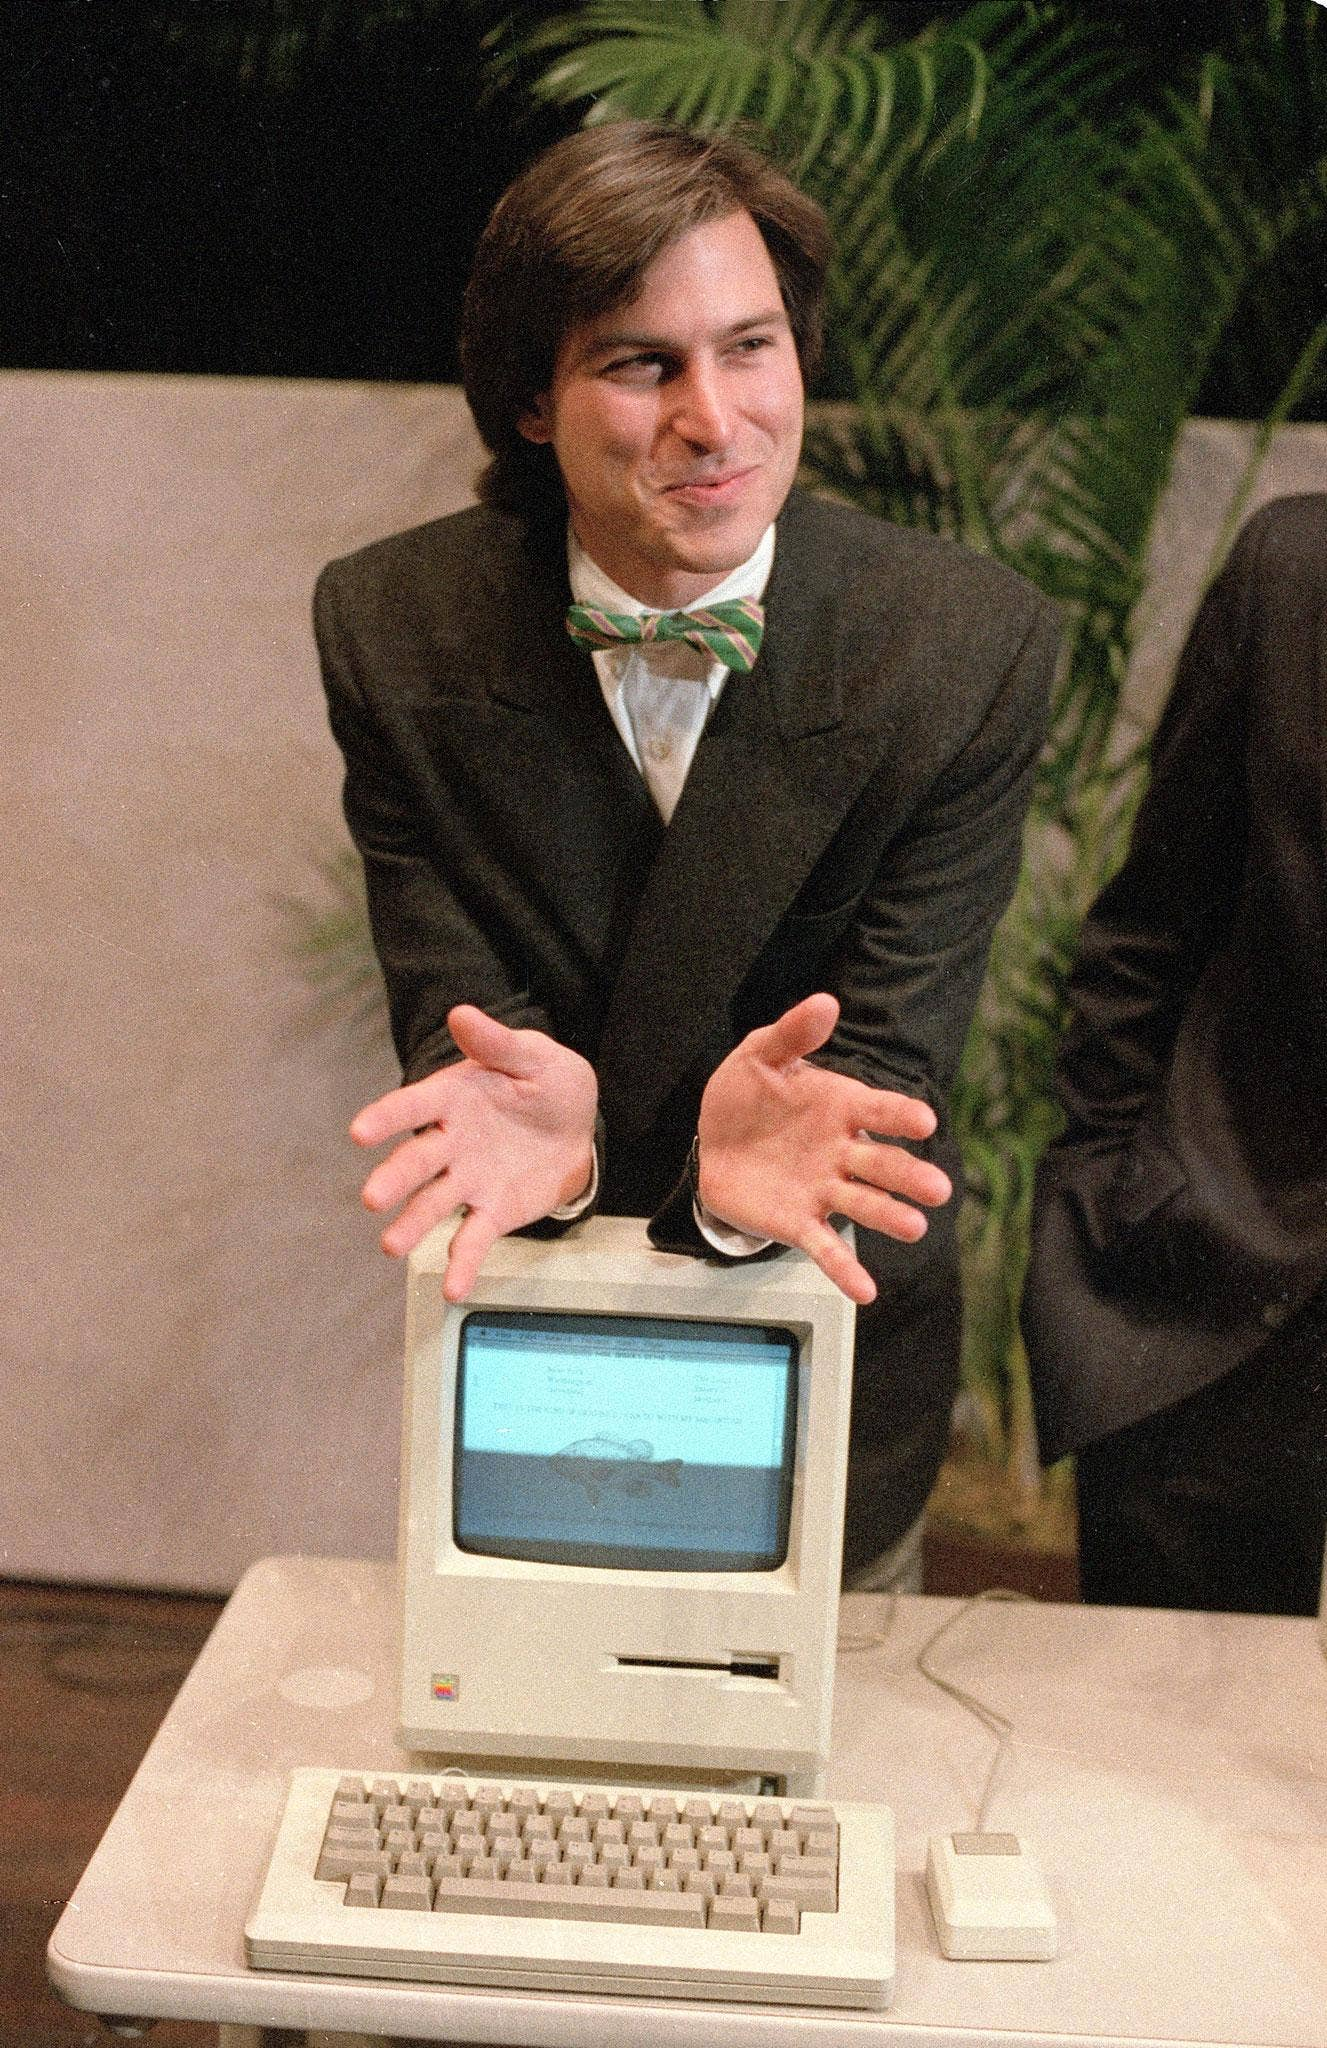 Steve Jobs leans on the new Macintosh personal computer in 1984